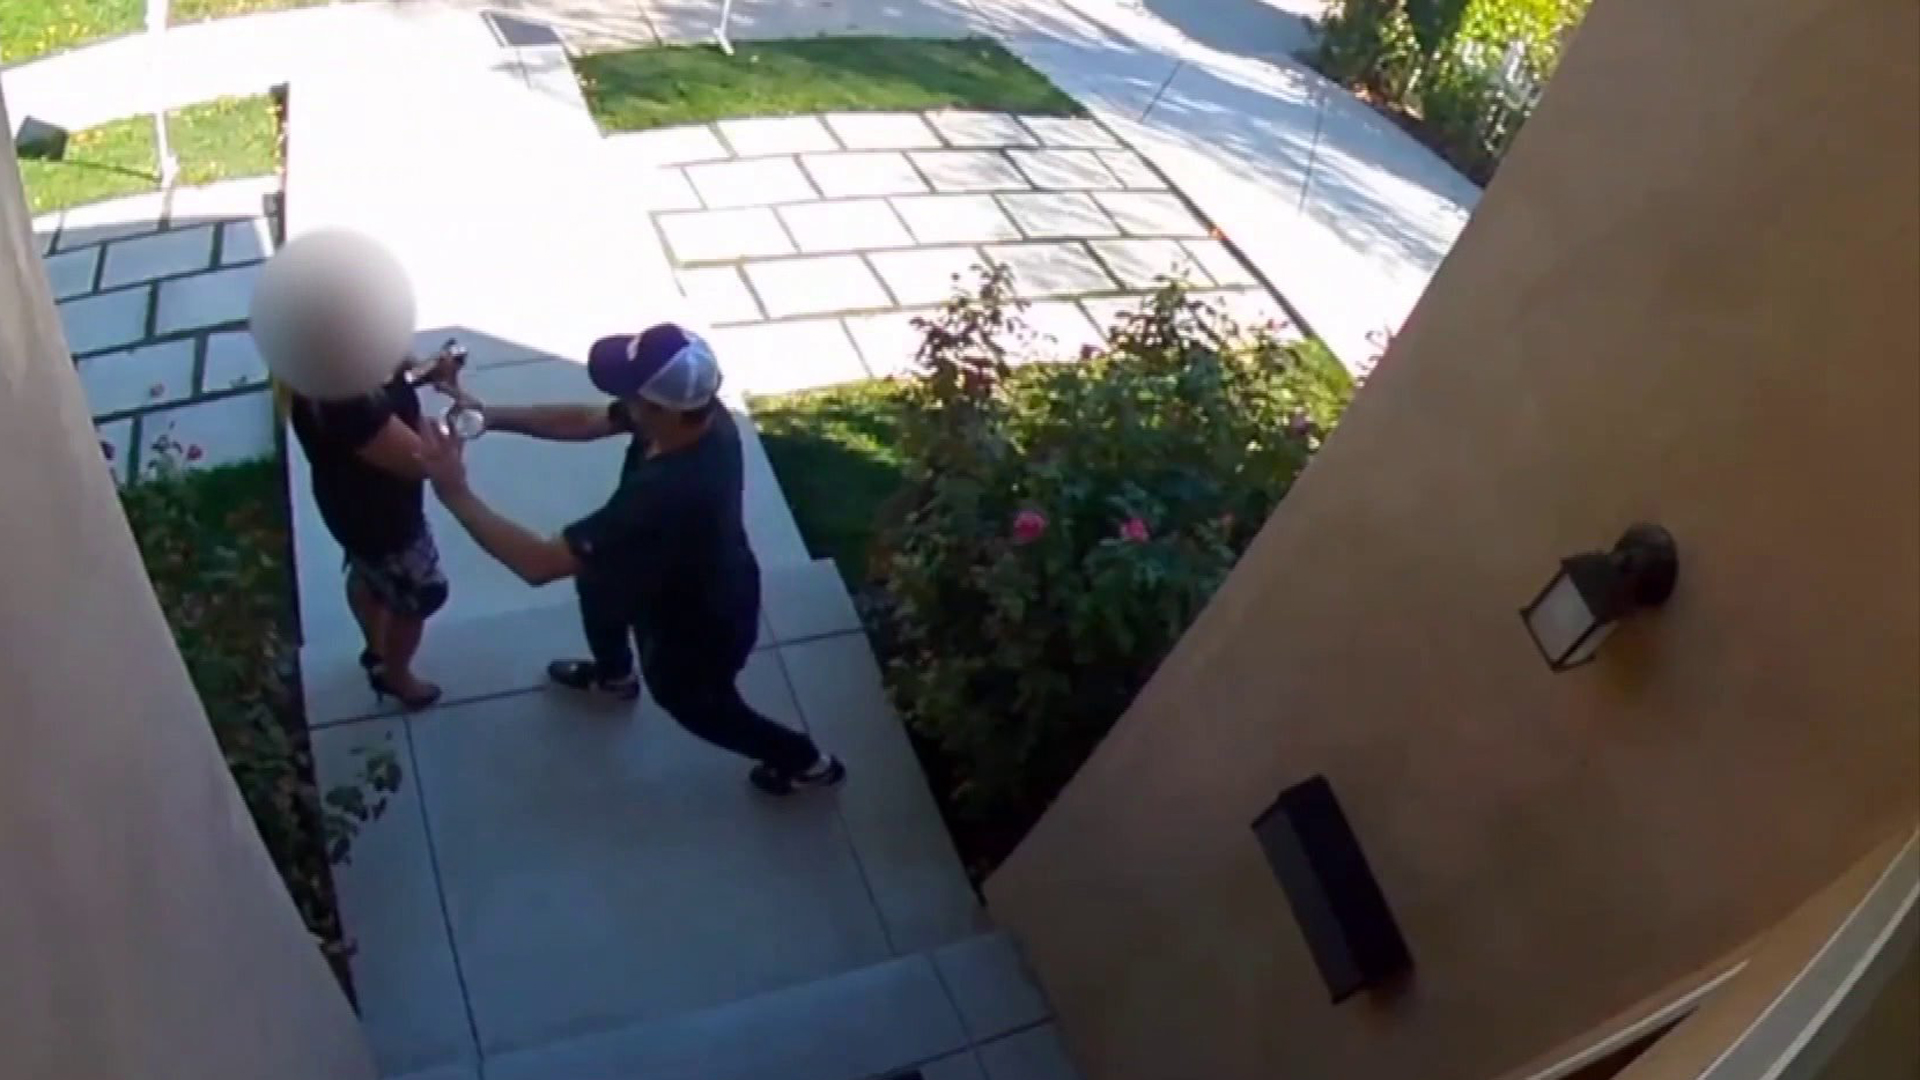 A still from a security video apparently shows a man shoving a real estate agent during an open house in Encino on Sept. 22, 2019.